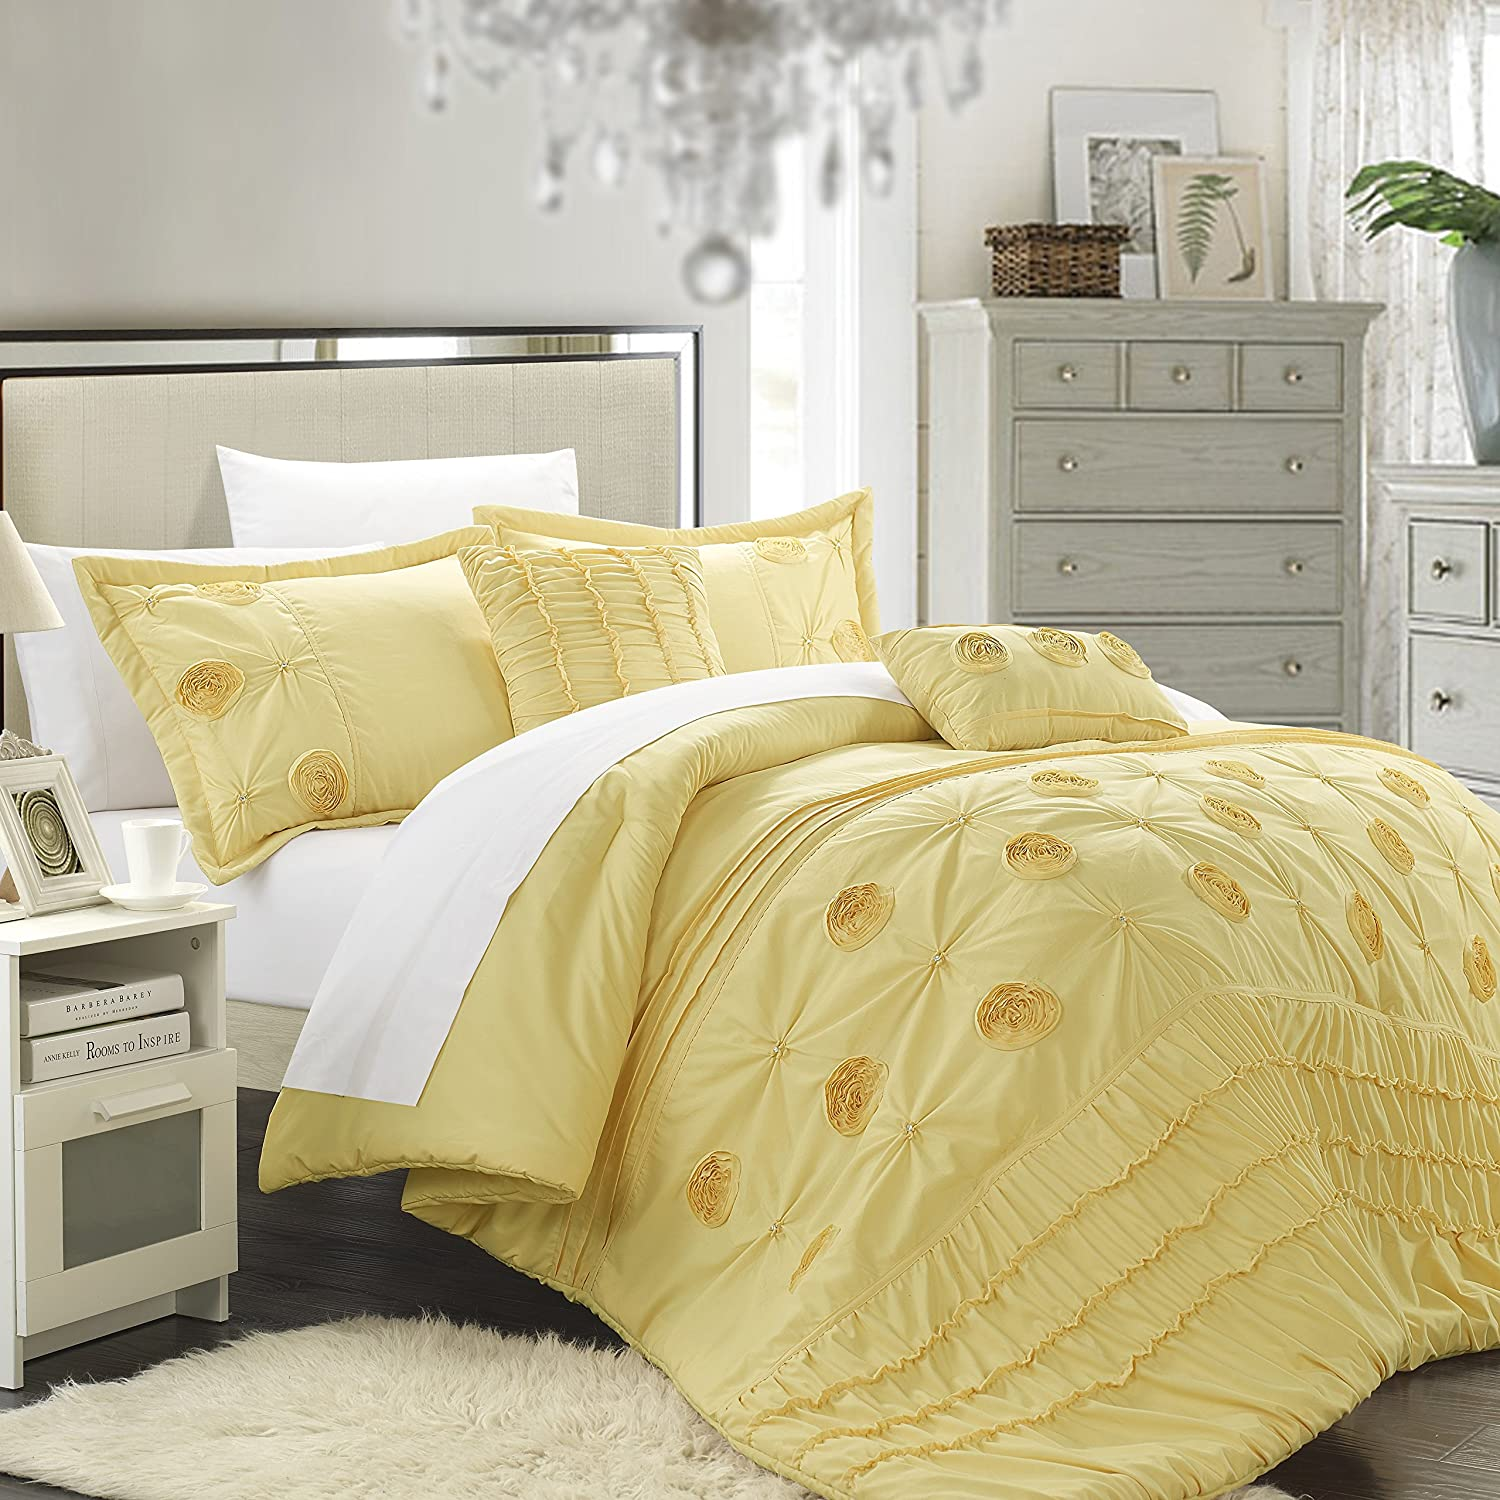 5-Piece Florentina Floral Pleated Comforter Set, Yellow, Queen